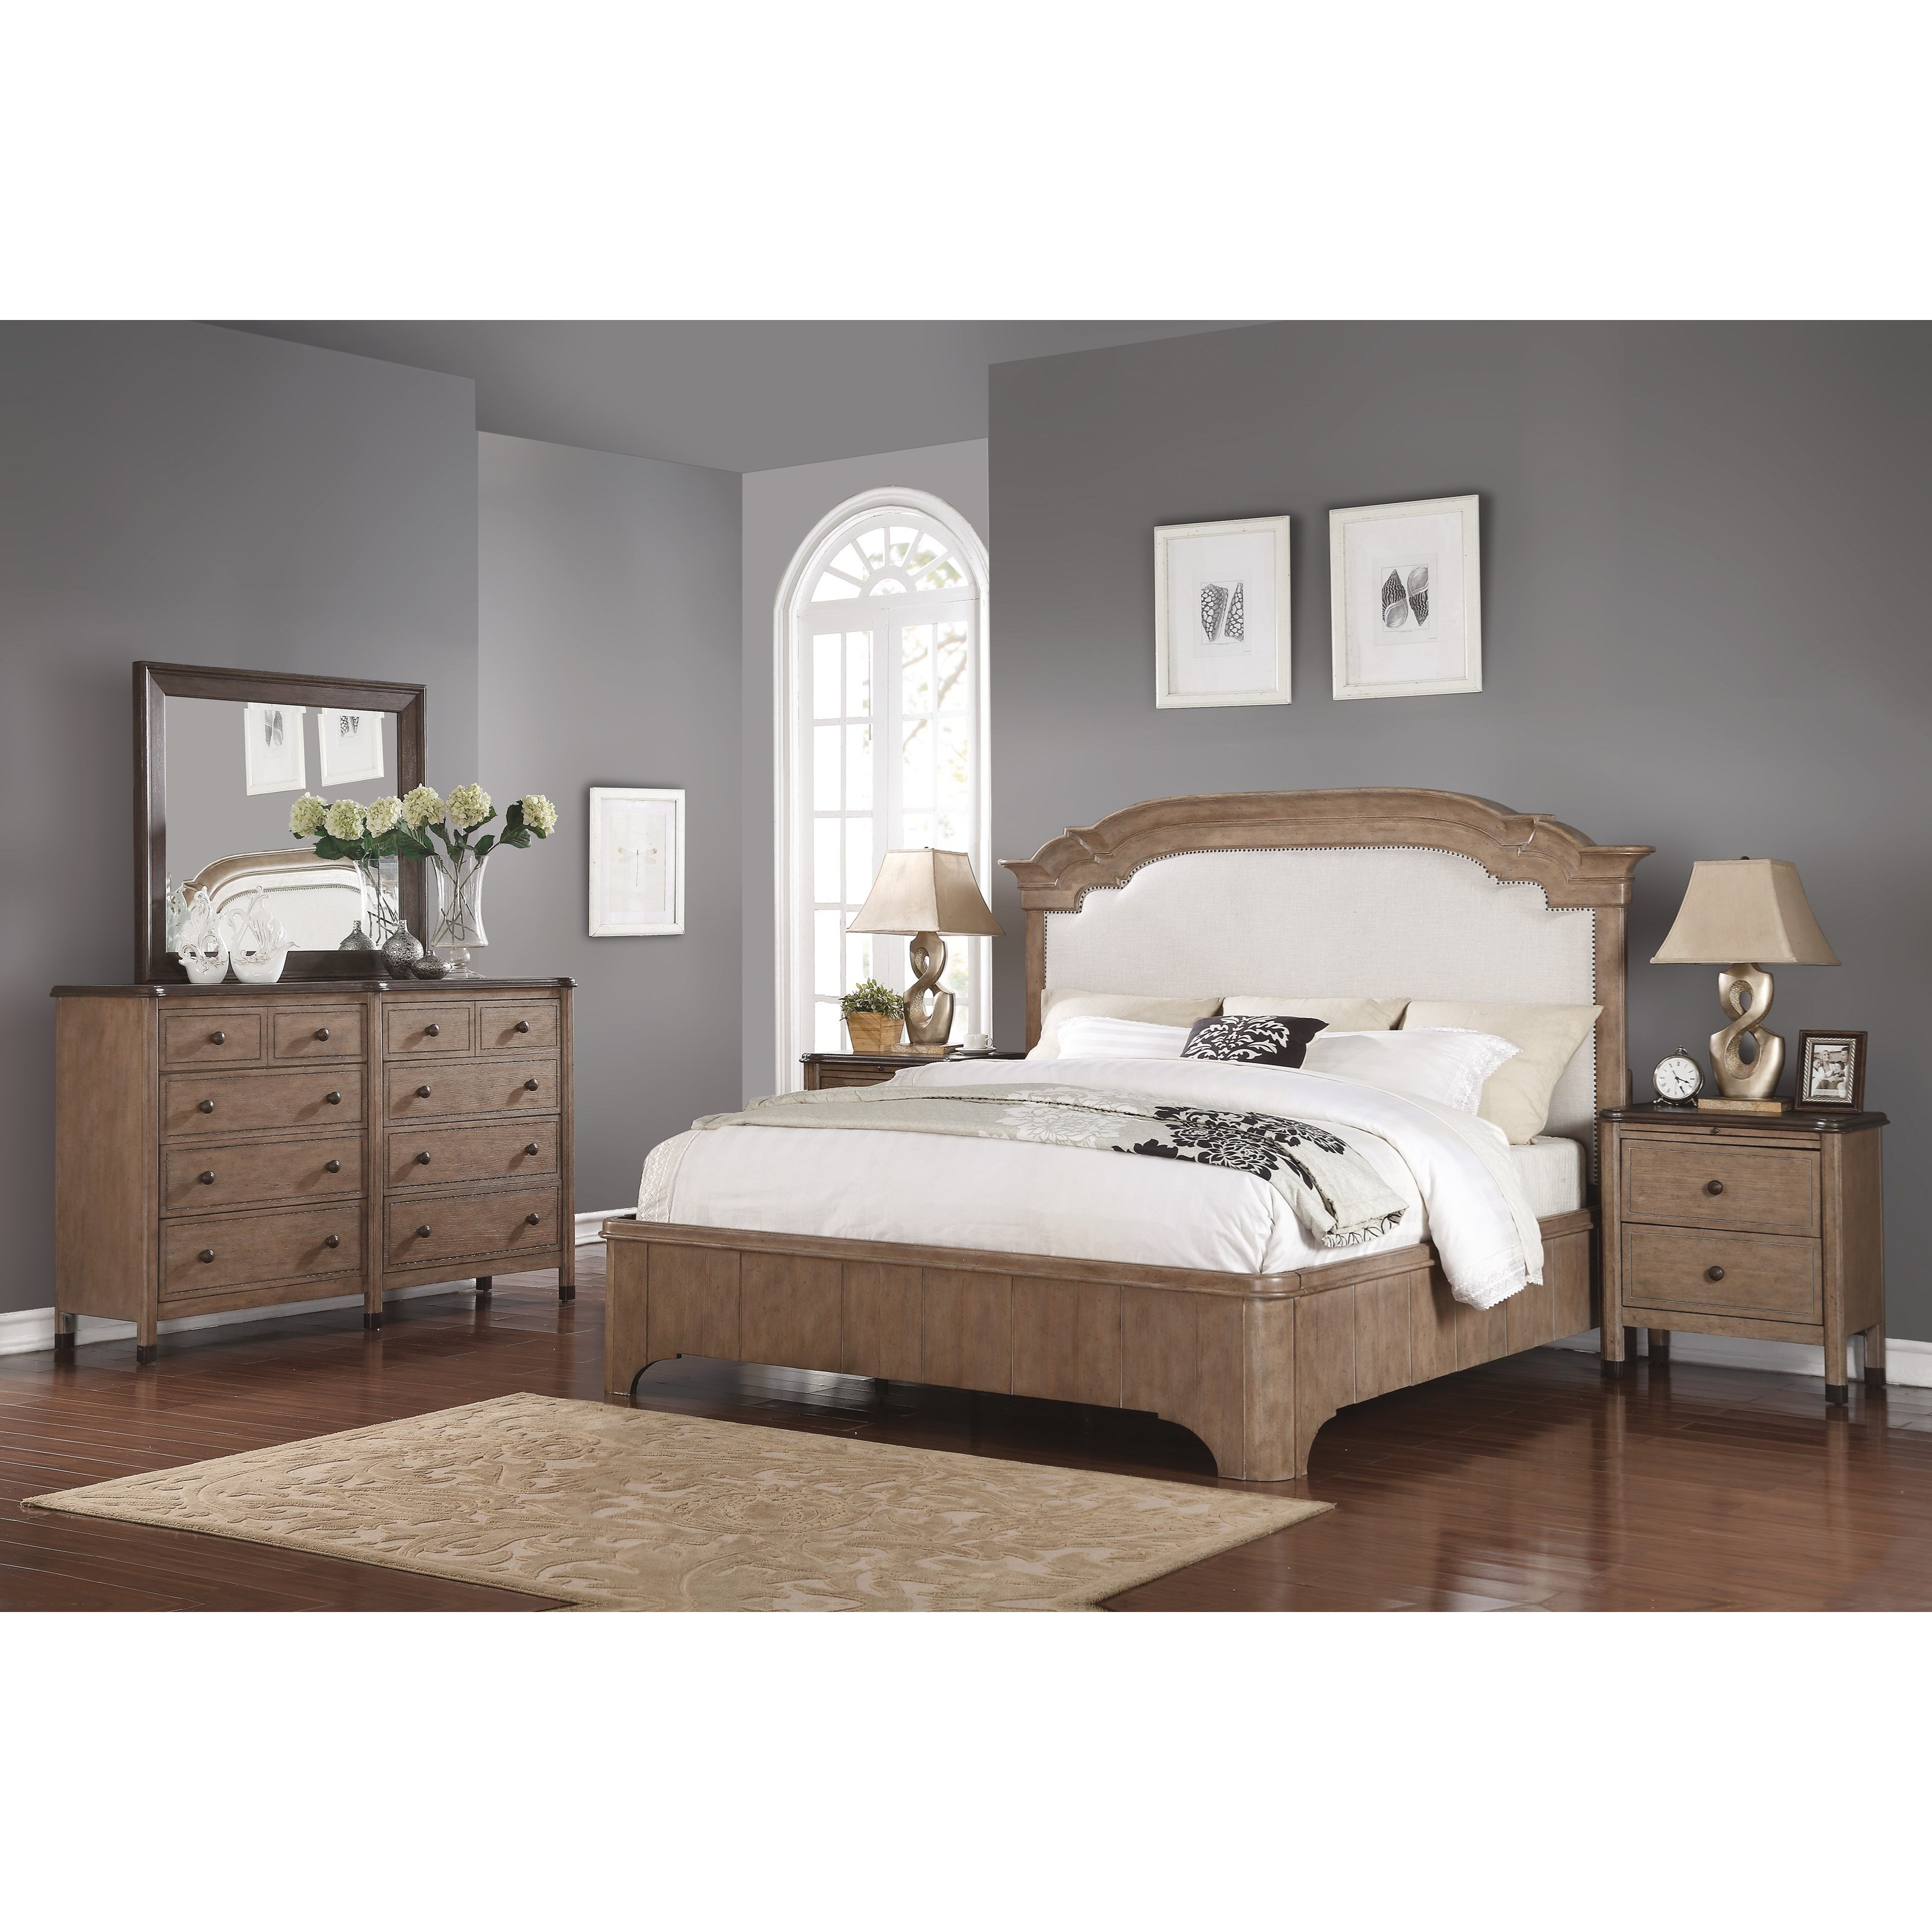 Bedrooms Transitional Home: Flexsteel Wynwood Collection Carmen W1046-863 Transitional